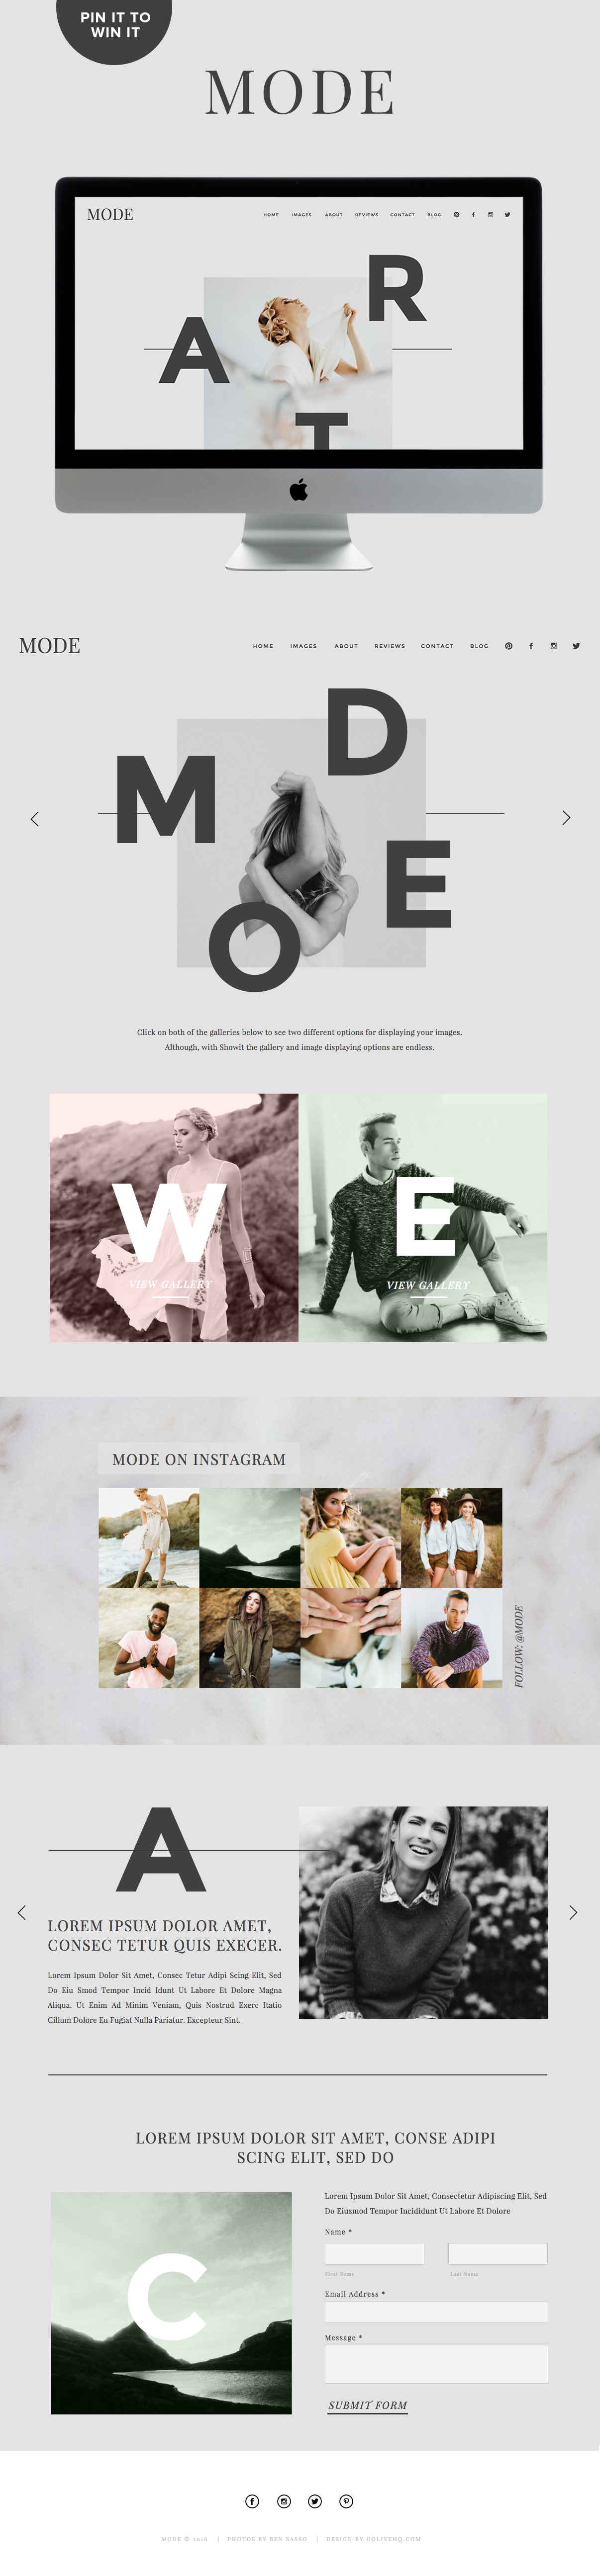 Showit5 website theme inspiration   by GOLIVEHQ.CO